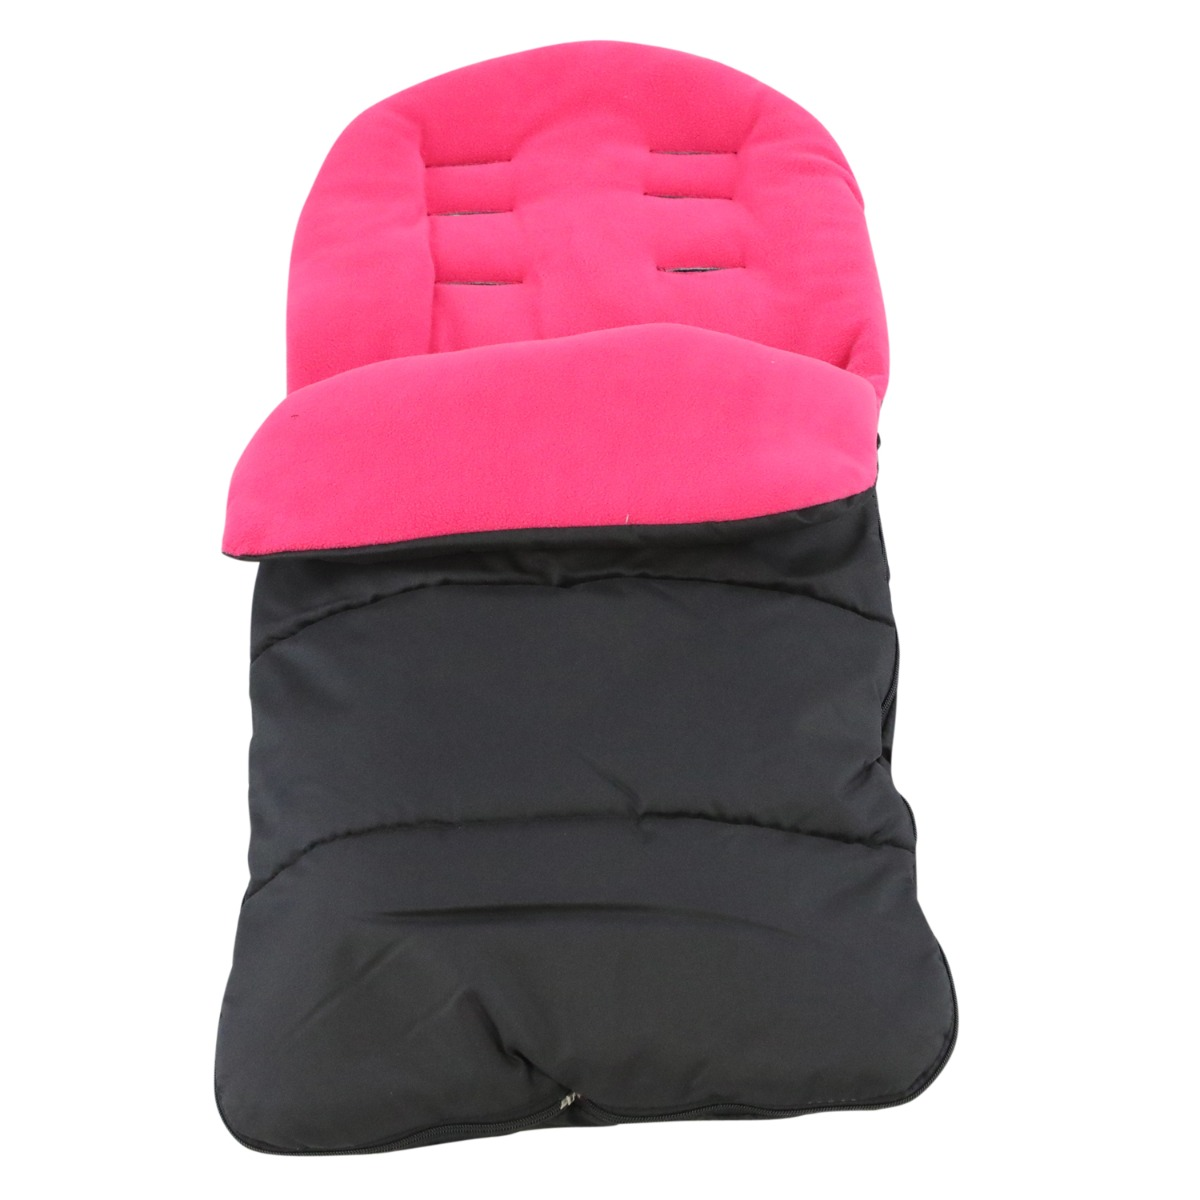 Universal-Pushchair-Footmuff-Cosytoes-Fleece-Lined-Fit-For-Stroller-Prams-Buggy thumbnail 43